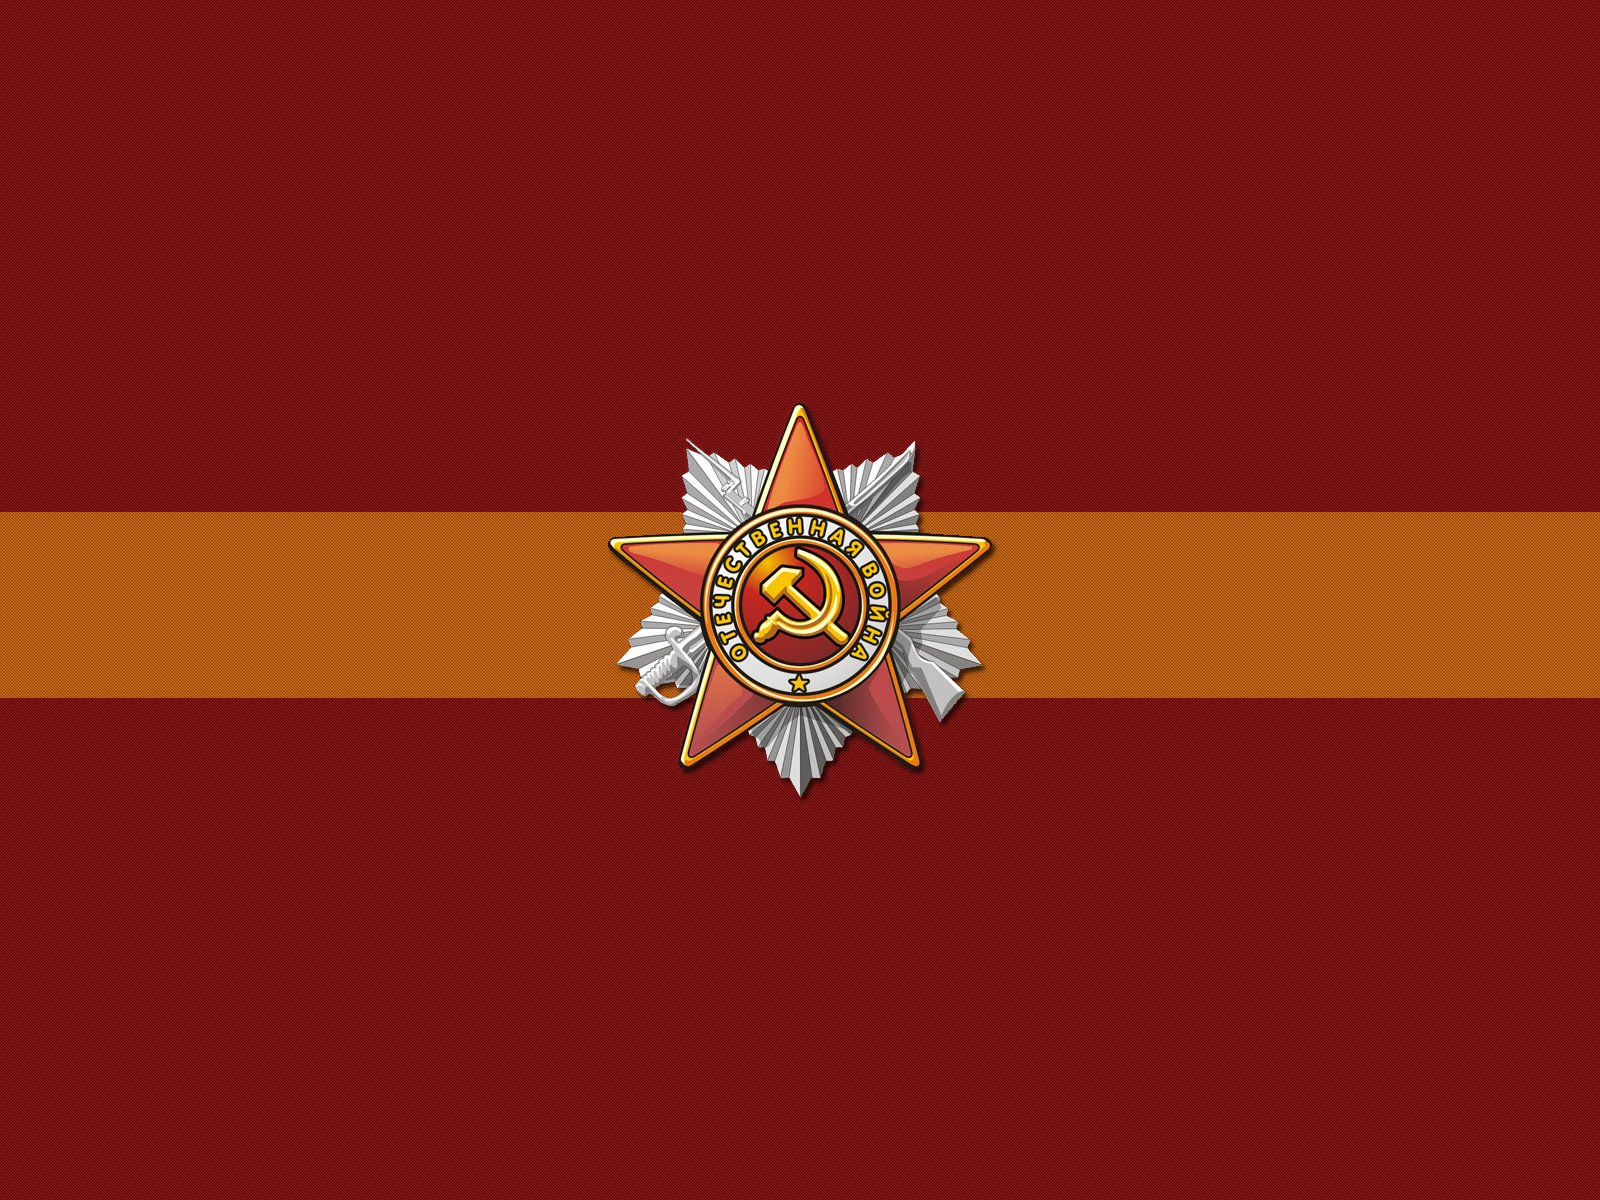 Communism Wallpaper and Background Image | 1600x1200 | ID ...